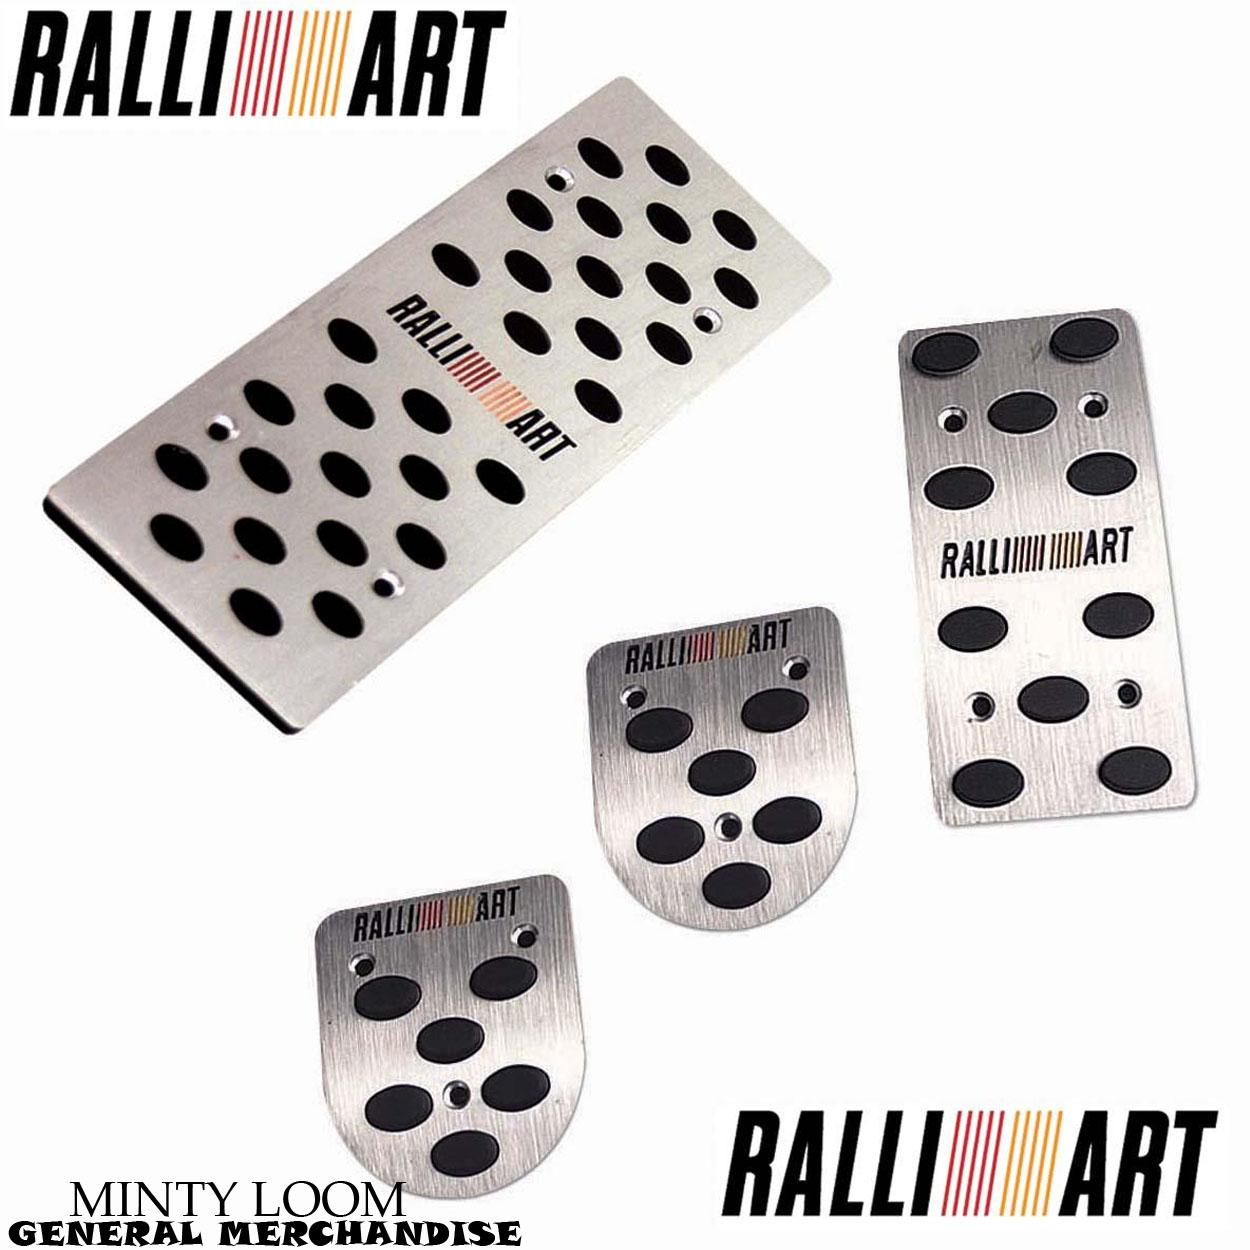 Ralliart Pedal Pads For Manual Transmission (silver) By Minty Loom General Merchandise.